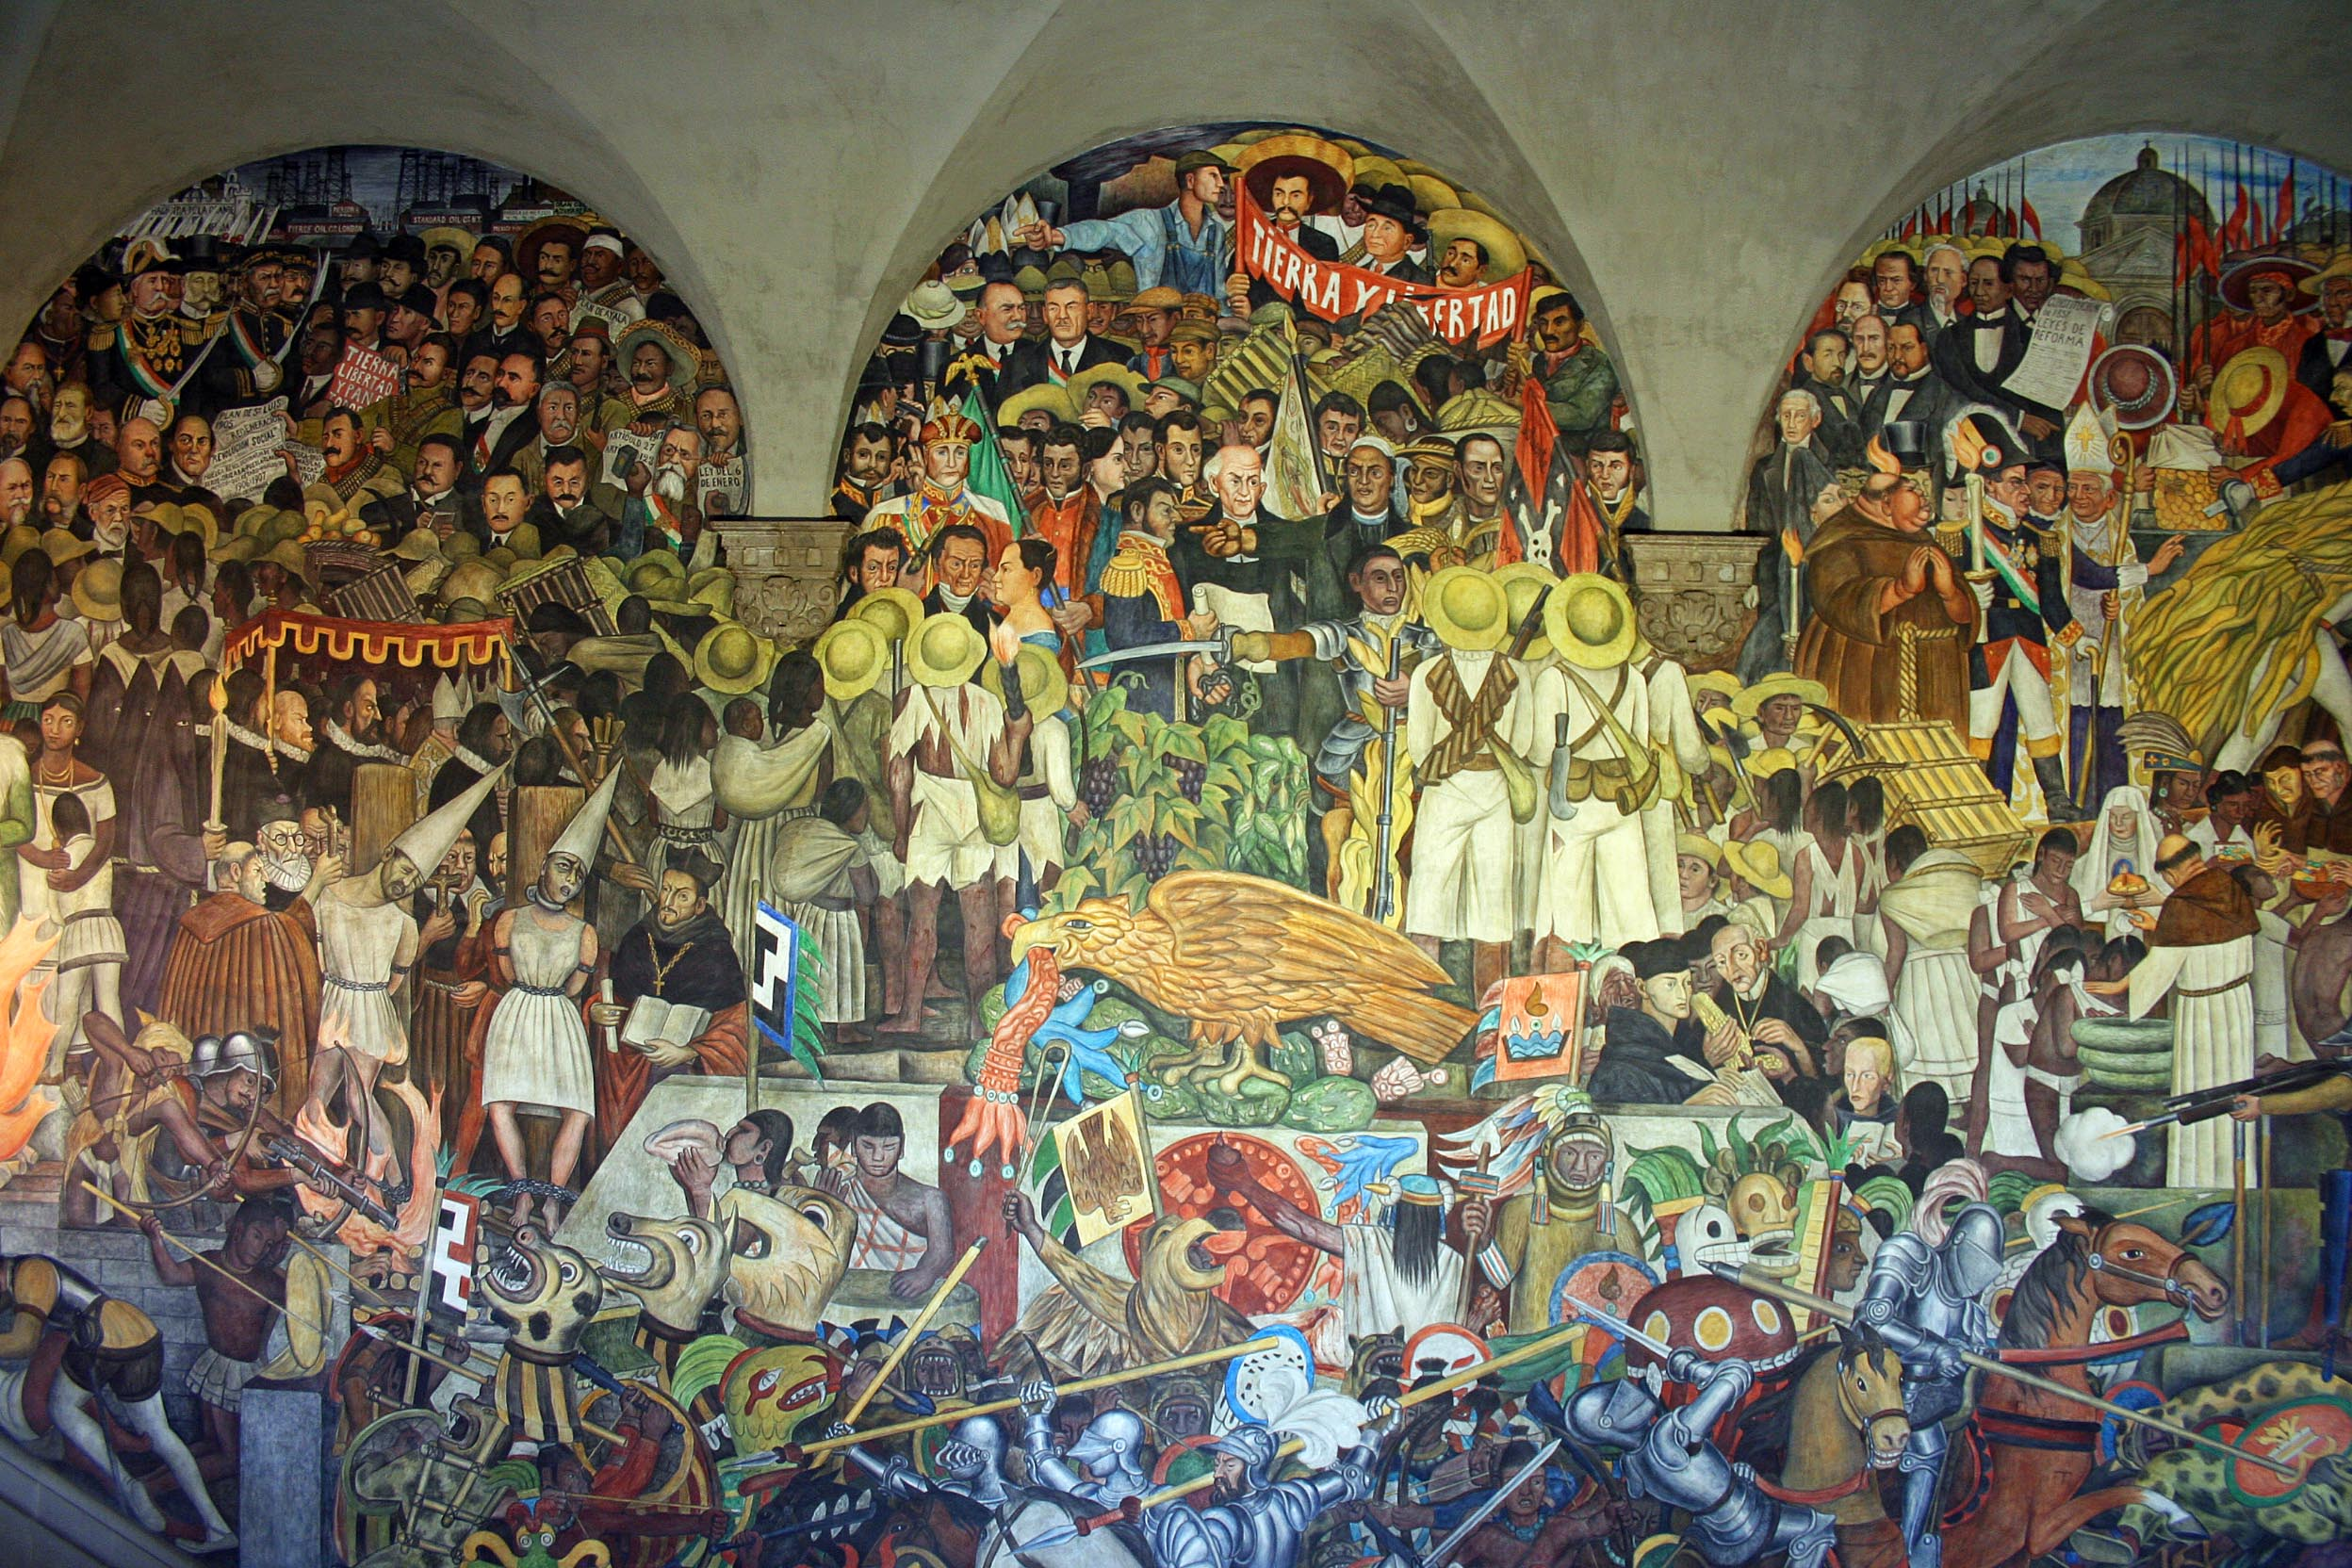 Mexican history depicted through muralism murality for Mural history